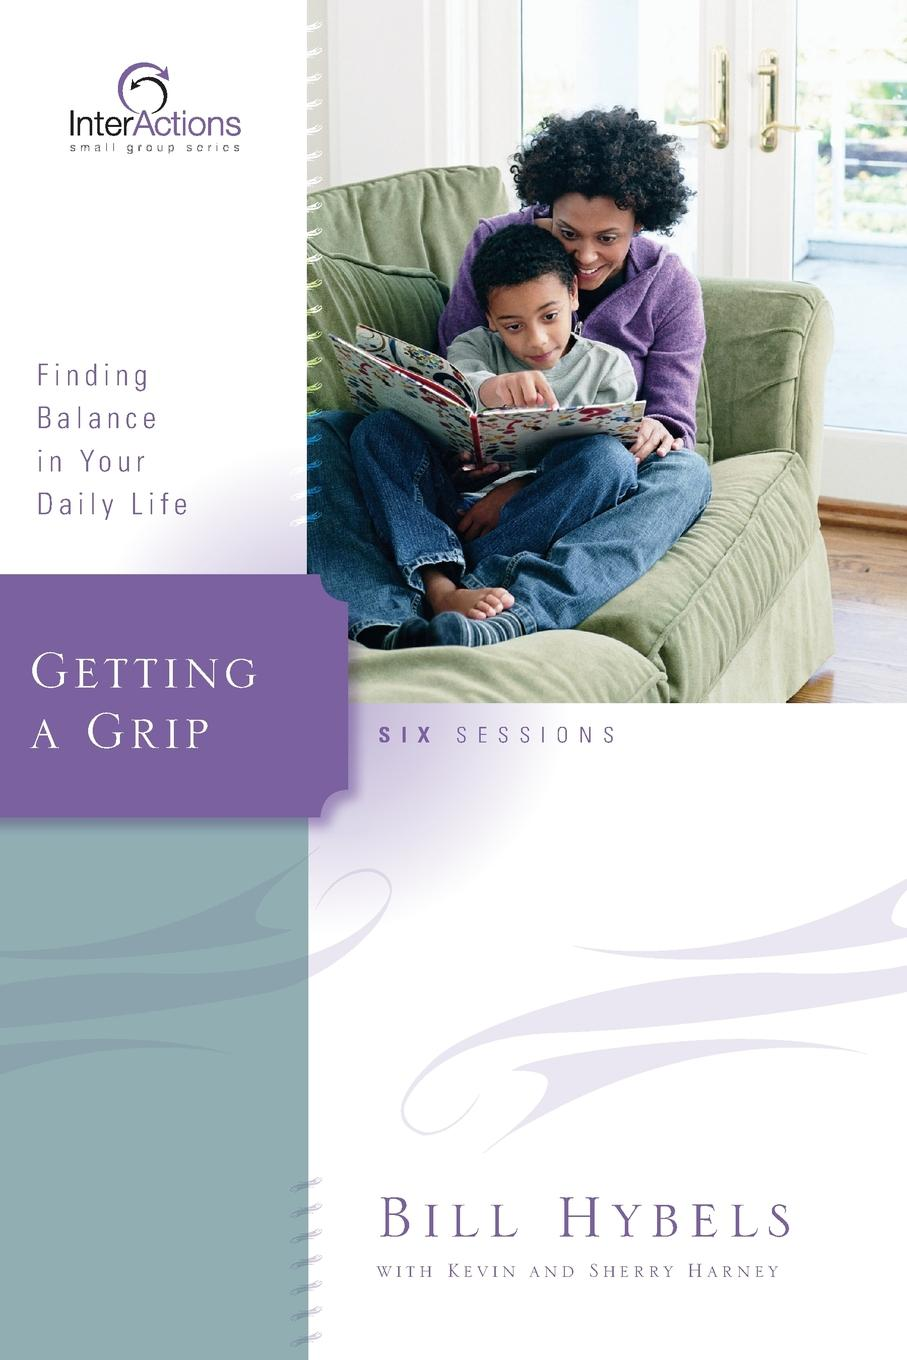 Bill Hybels Getting a Grip. Finding Balance in Your Daily Life bill hybels getting a grip finding balance in your daily life